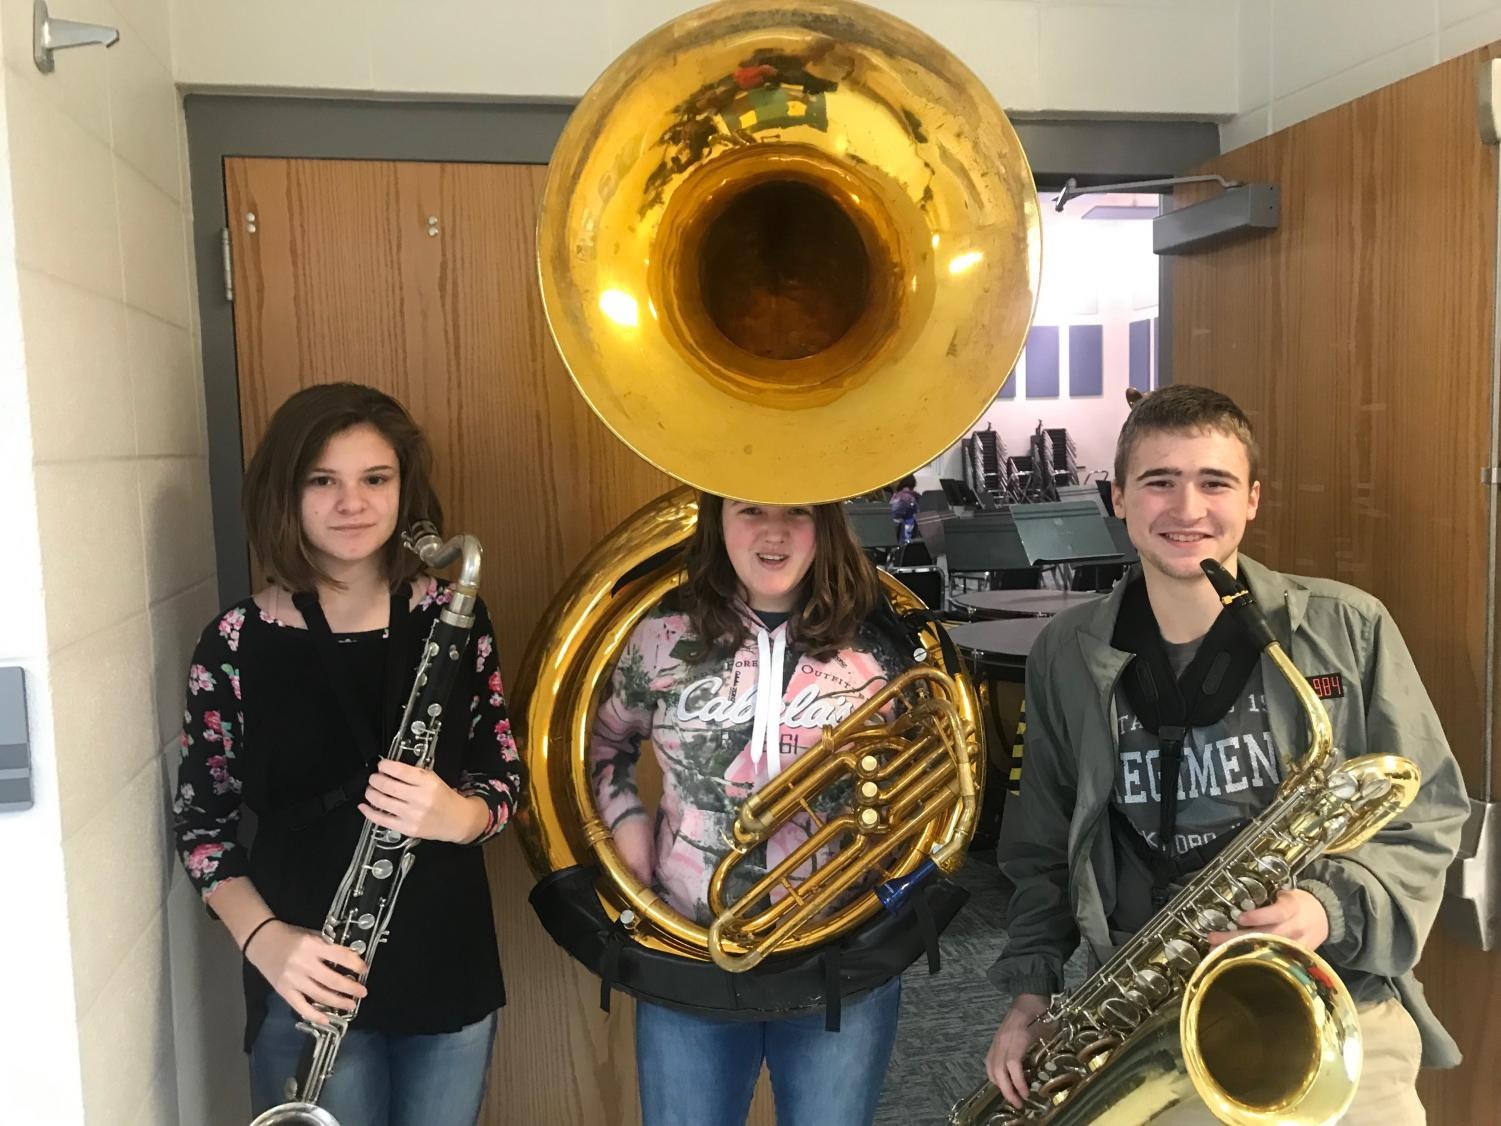 Alex, and some friends pose for a picture with their instruments.